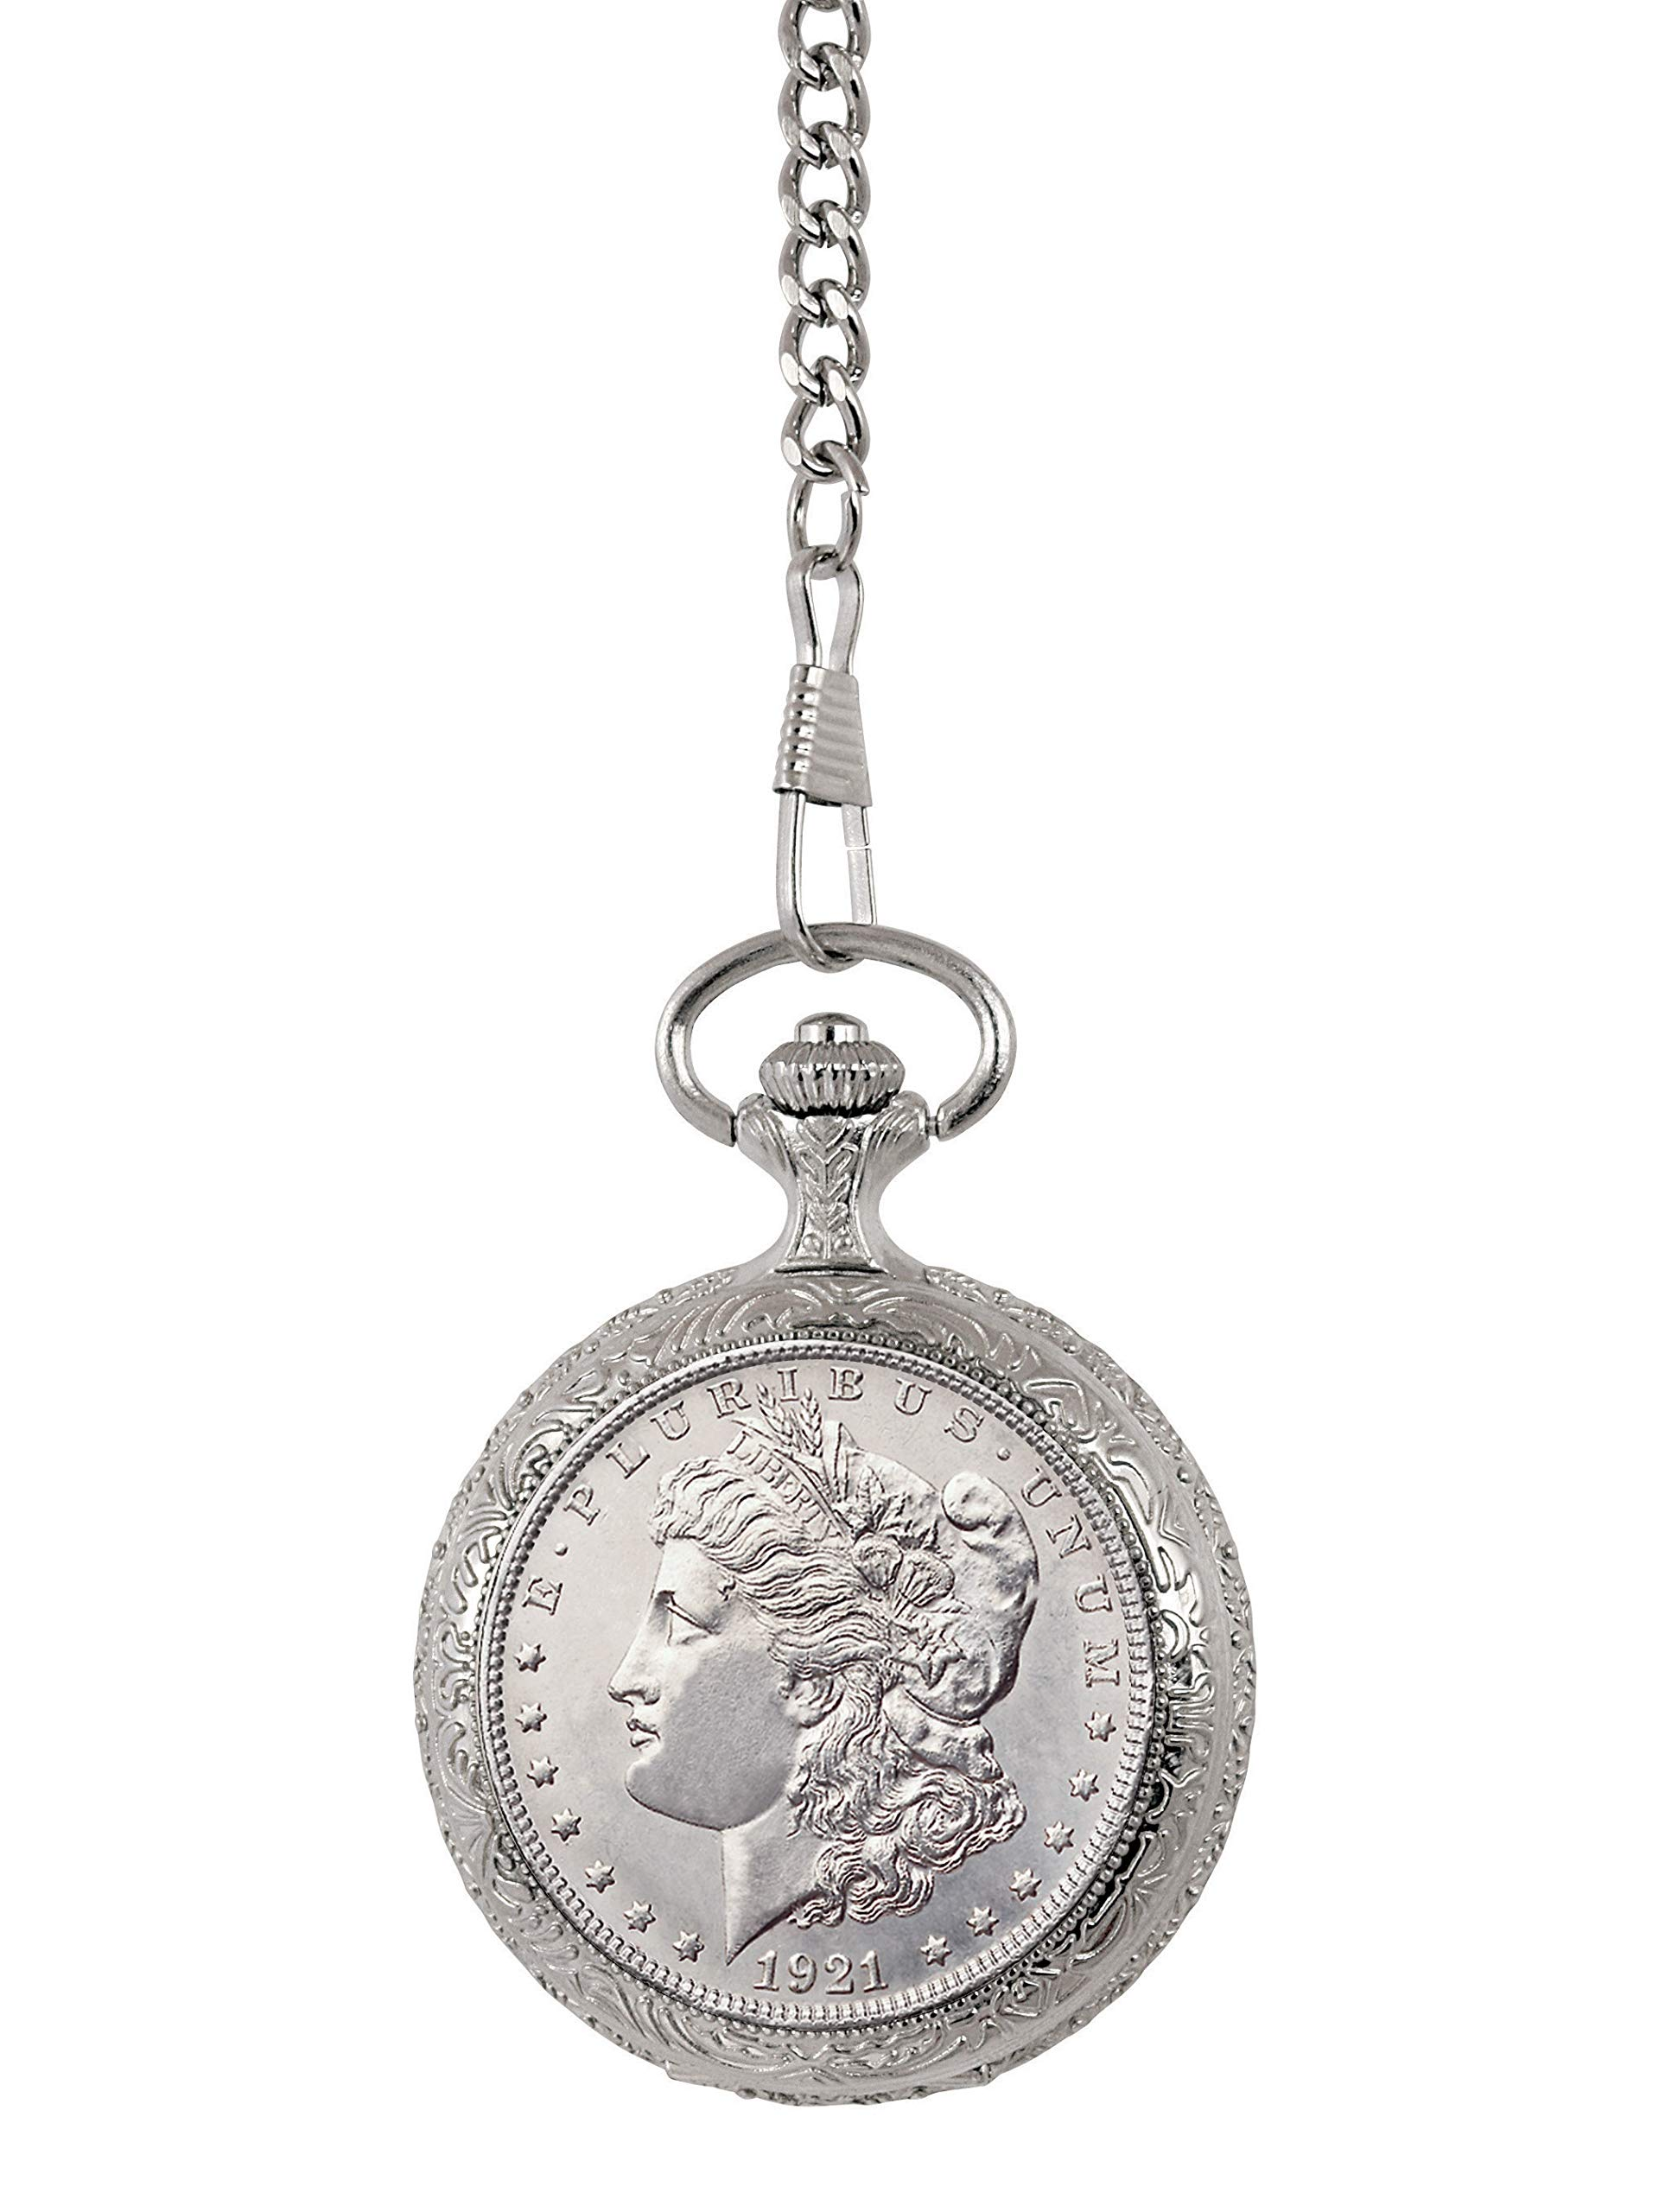 Brilliant Uncirculated Morgan Silver Dollar Pocket Watch